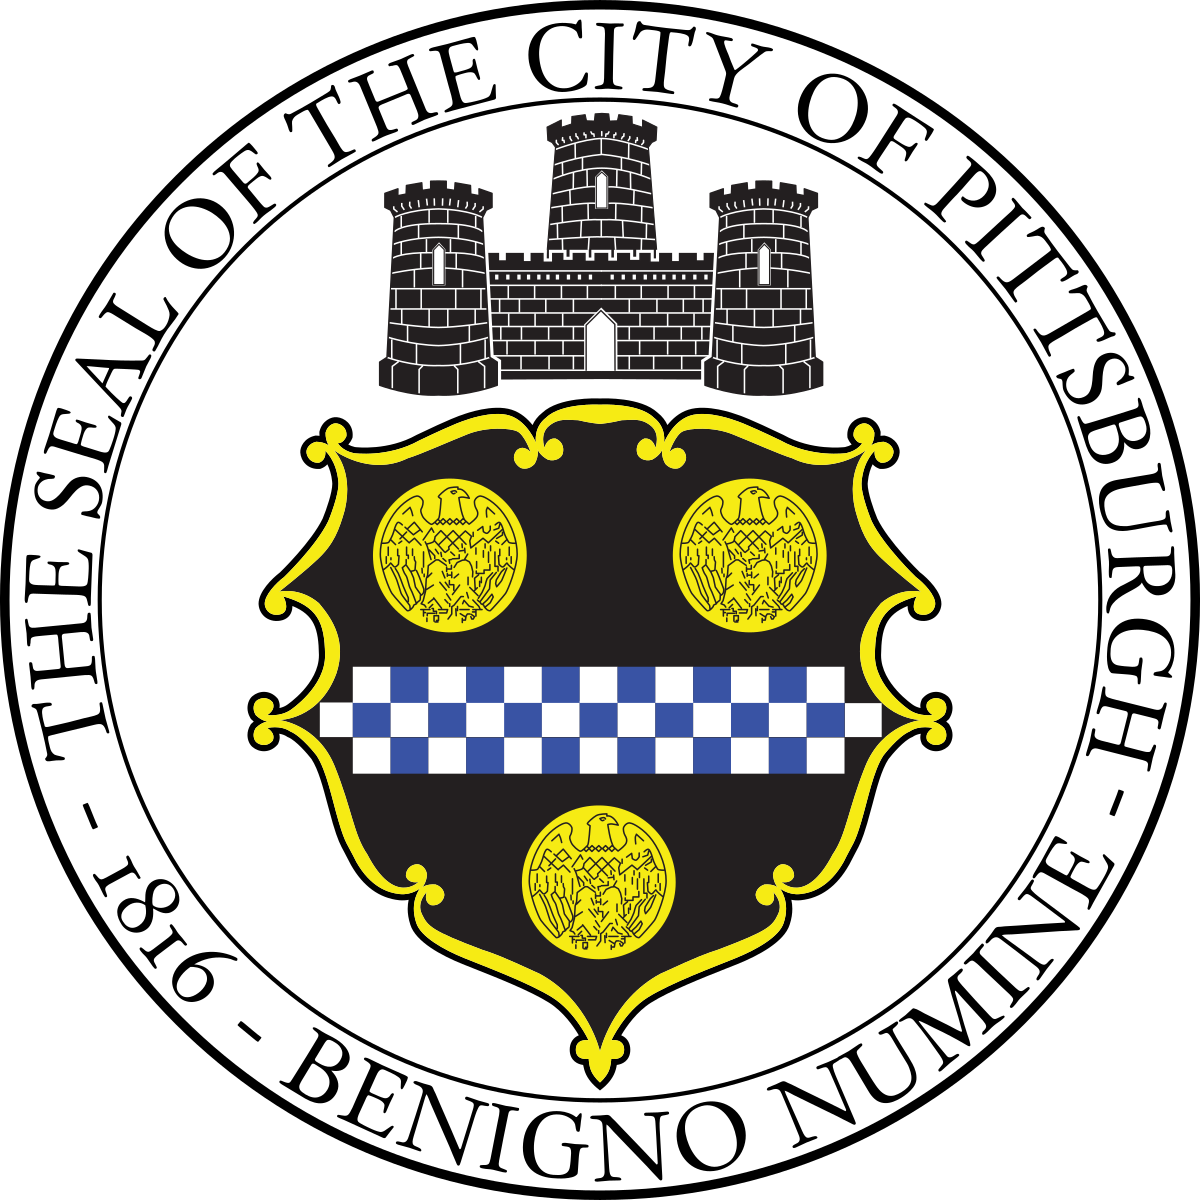 President clipart city government. Pittsburgh council wikipedia